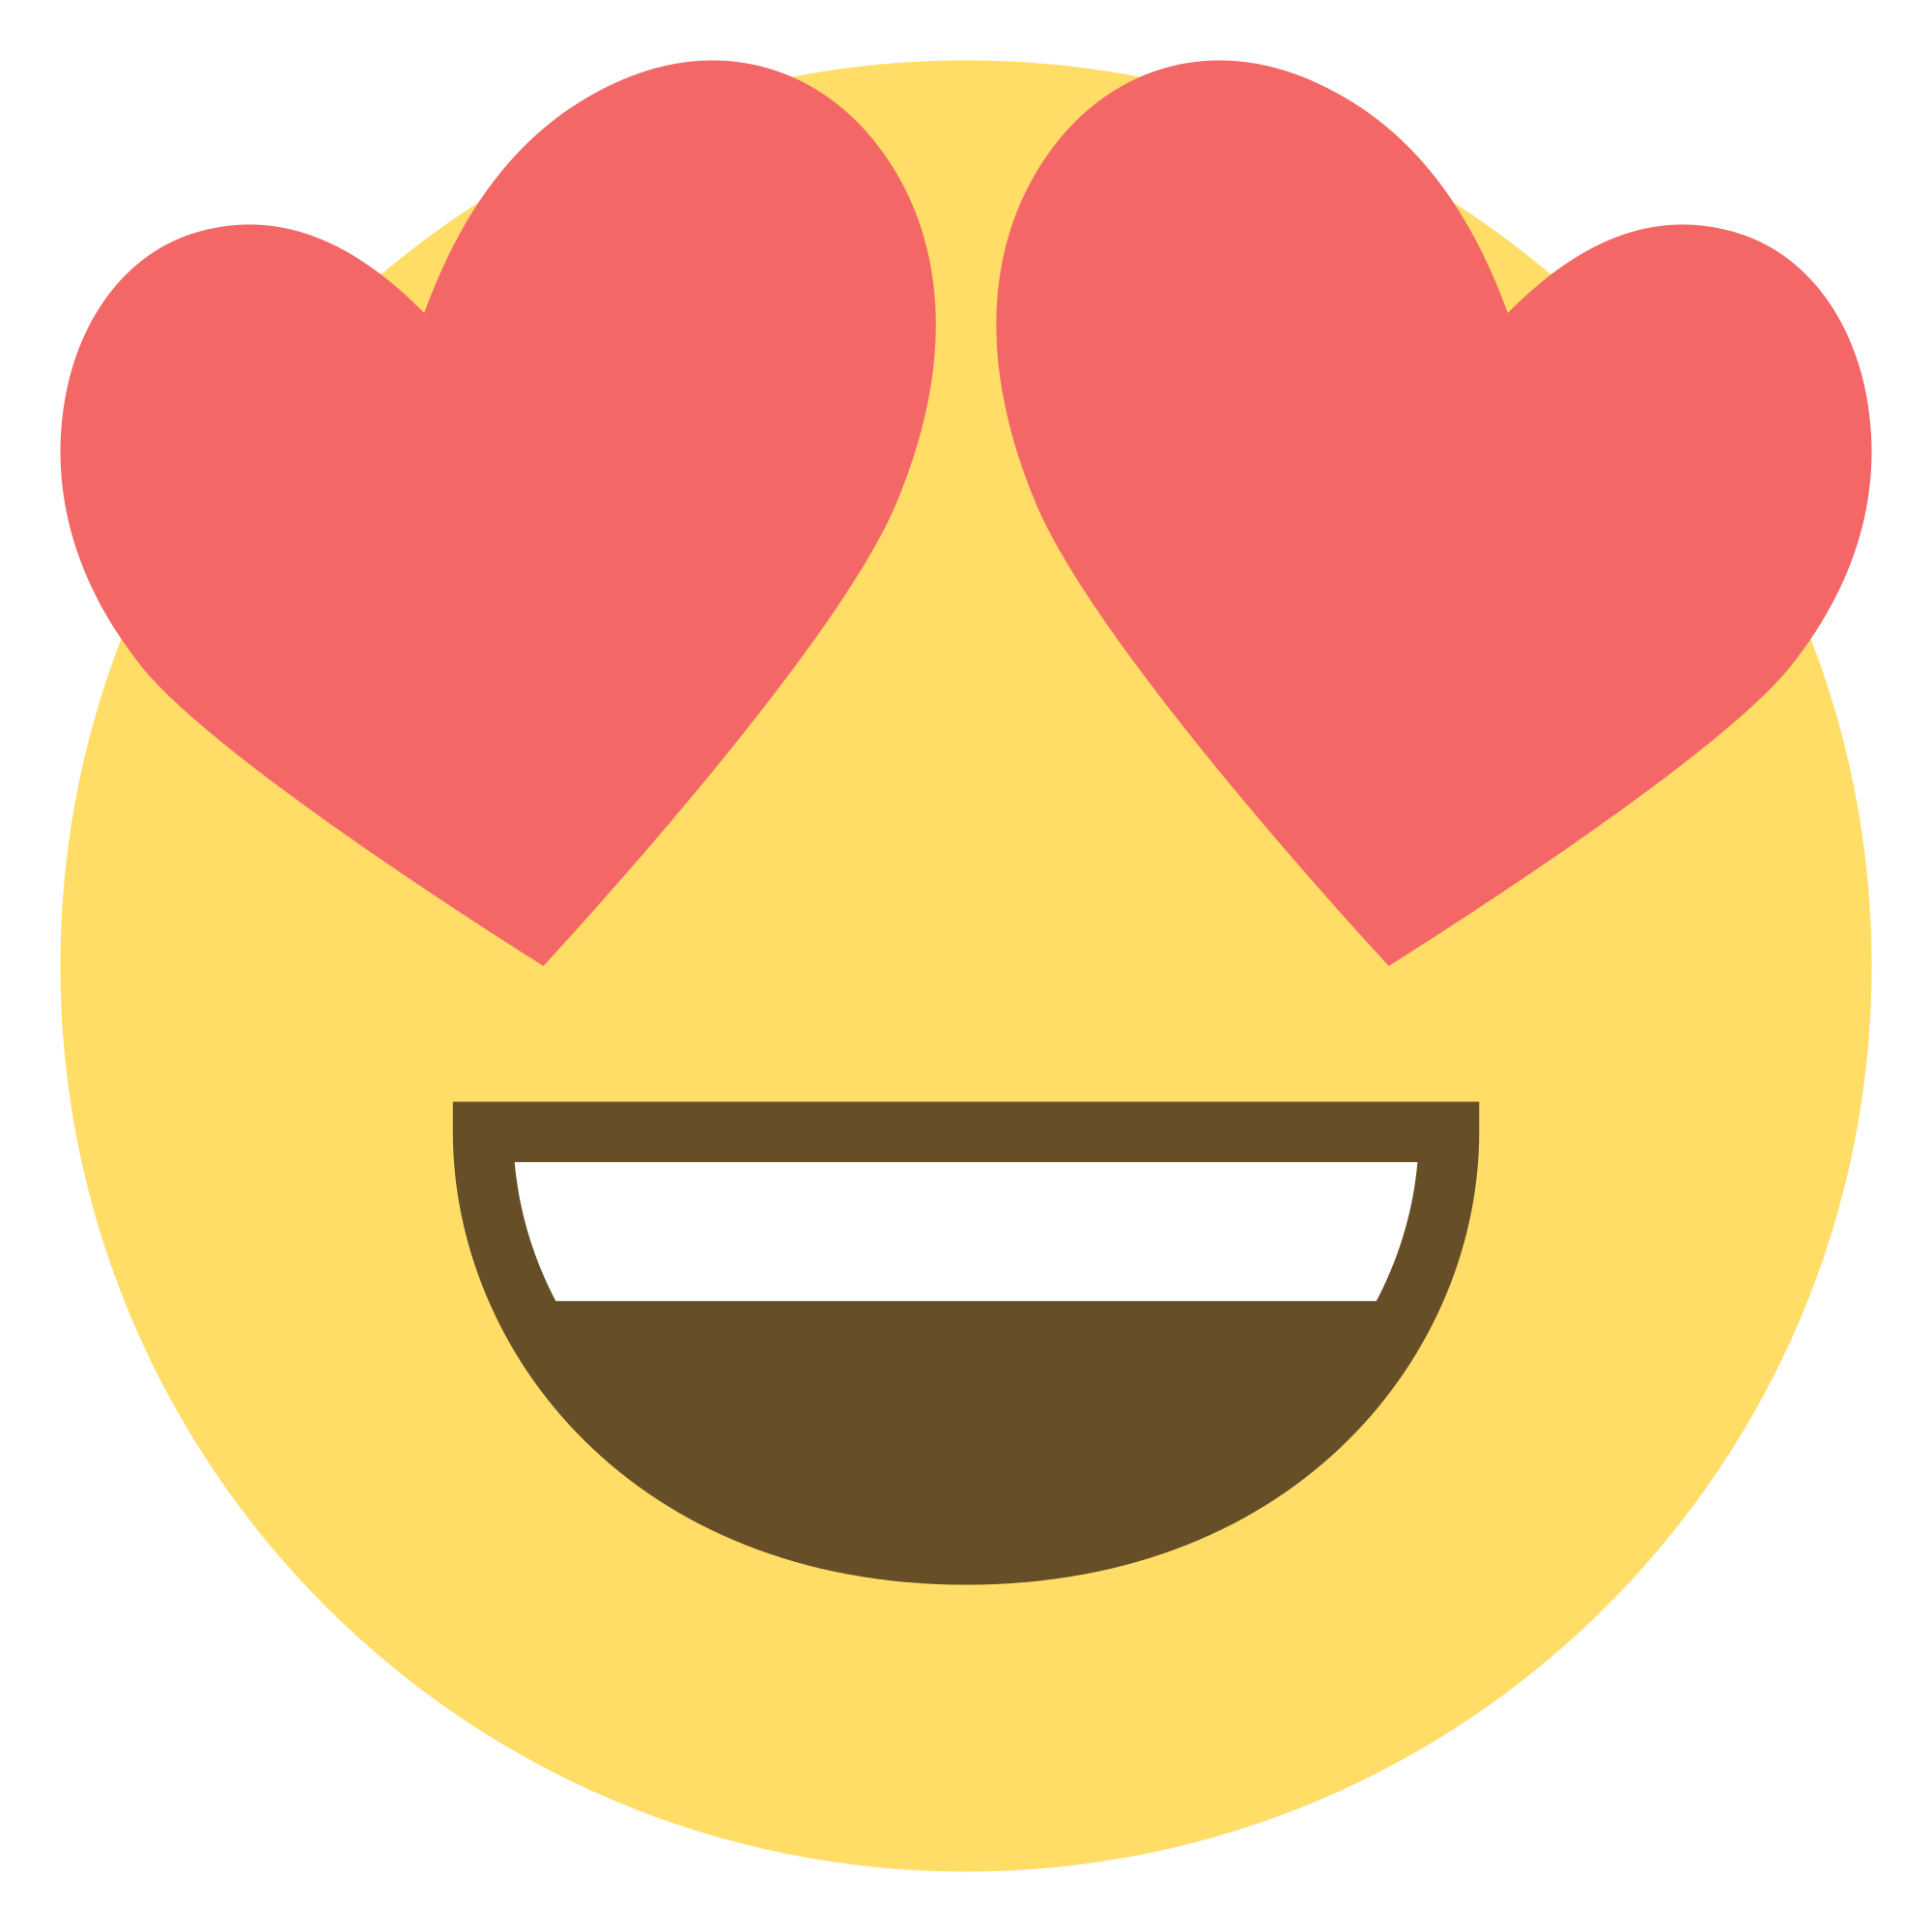 Love emoji transparent png stickpng love emoji thecheapjerseys Image collections